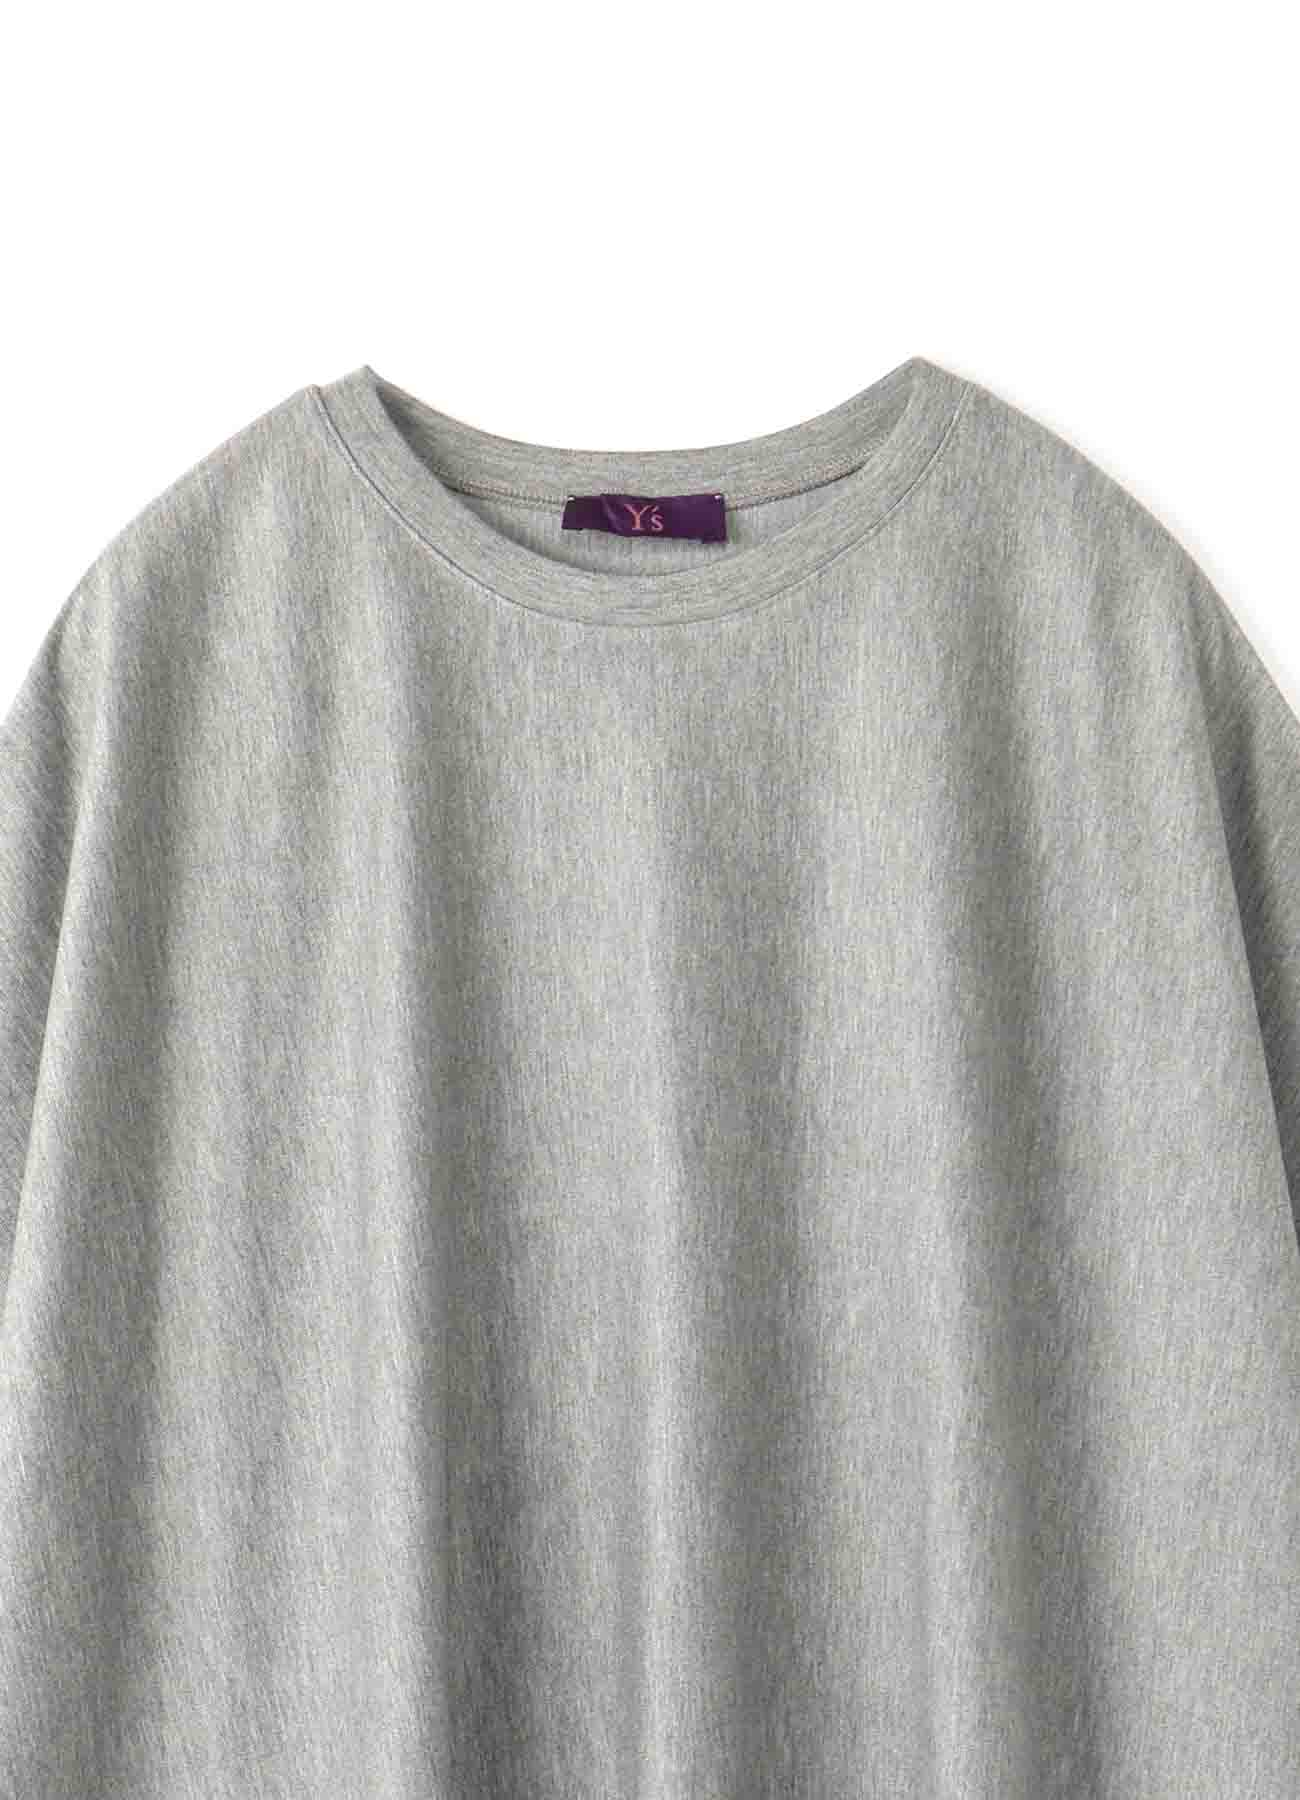 Y'sPINK DELAVIS PUNCH SCALLOP EMBROIDERY BIG T-SHIRT